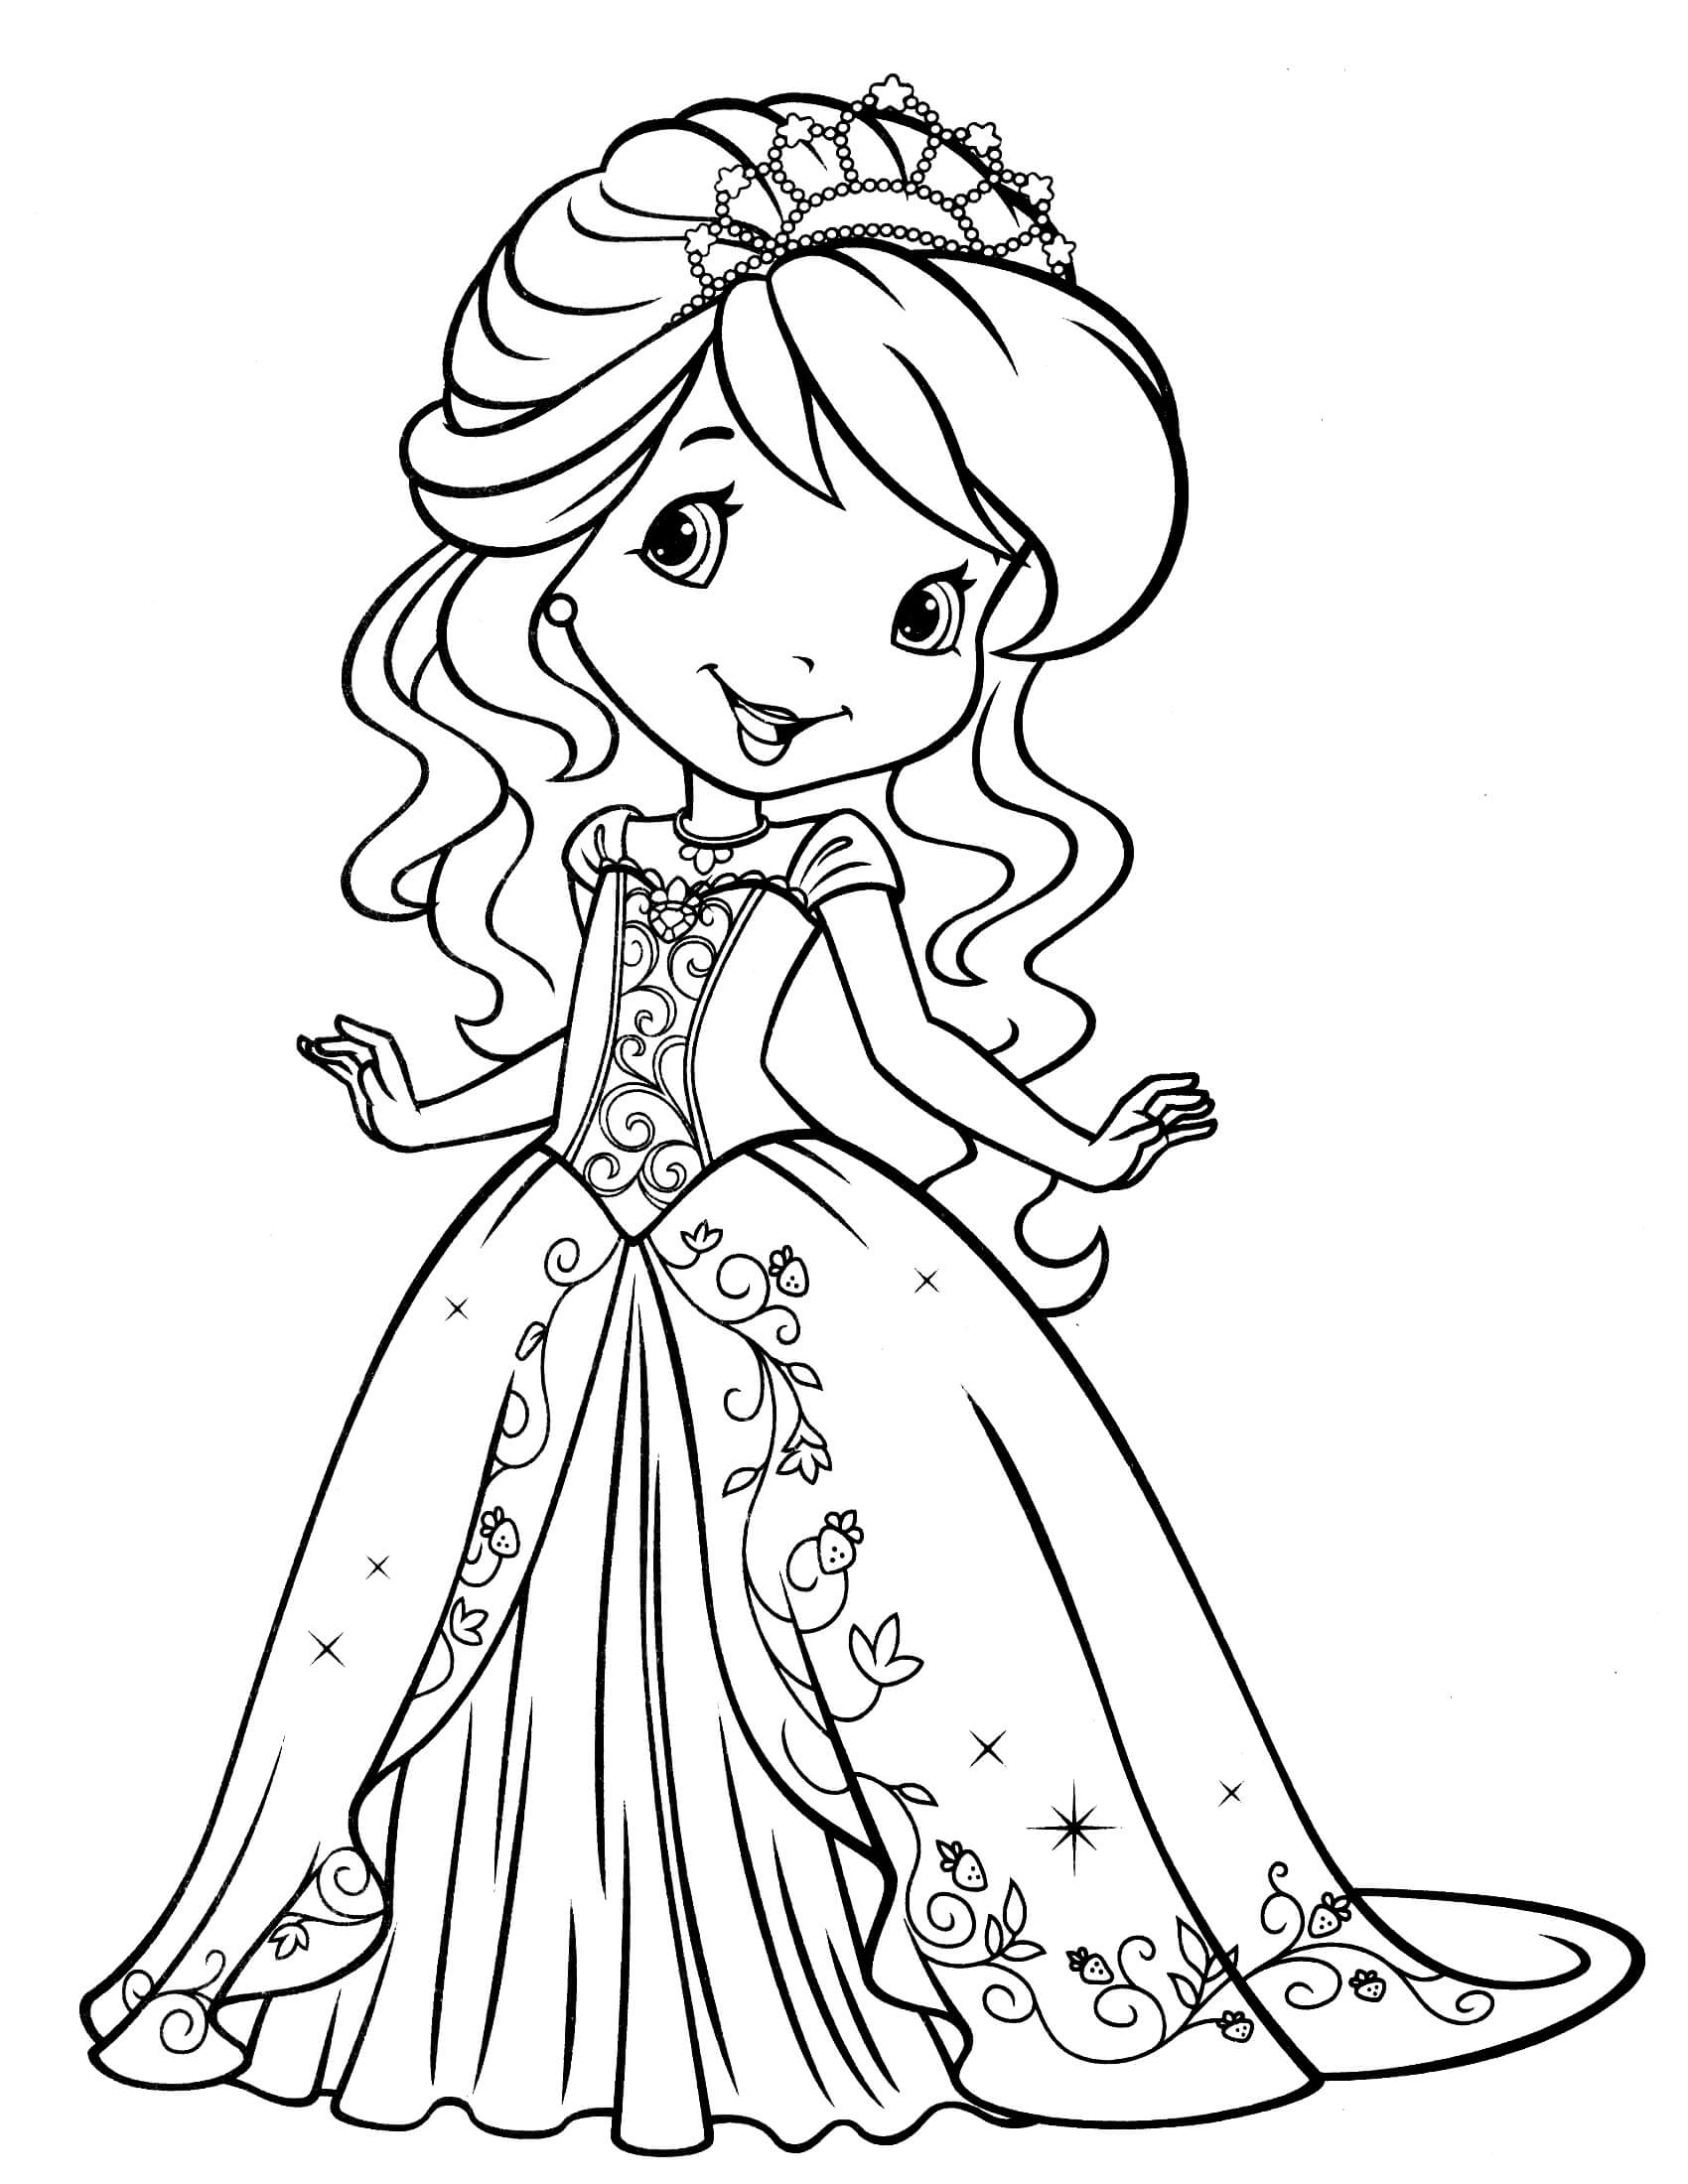 strawberry girl coloring pages strawberry shortcake girl coloring page di 2020 dengan pages girl coloring strawberry